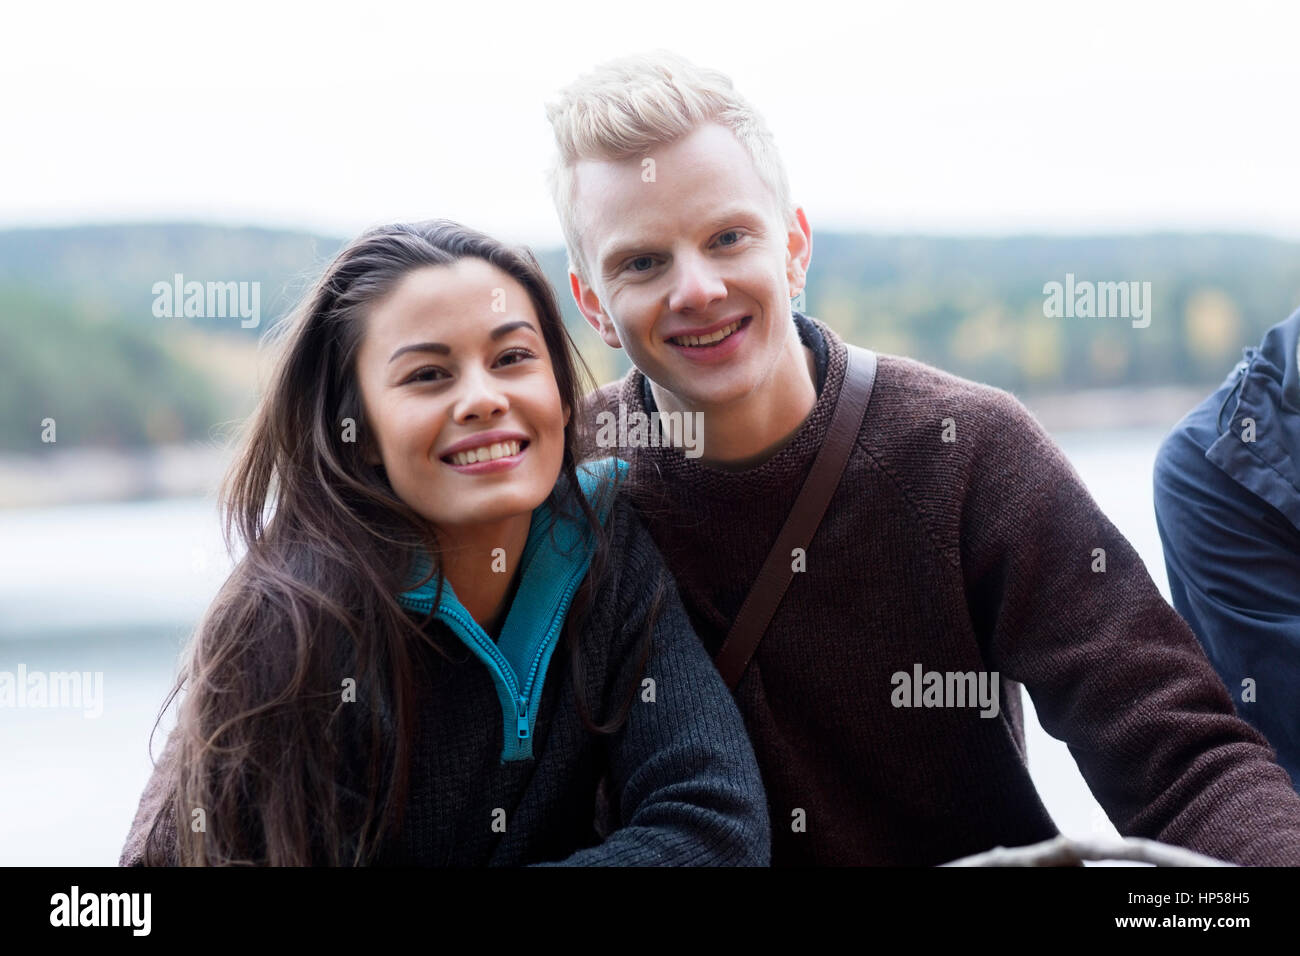 Smiling Multiethnic Couple At Lakeside Camping - Stock Image